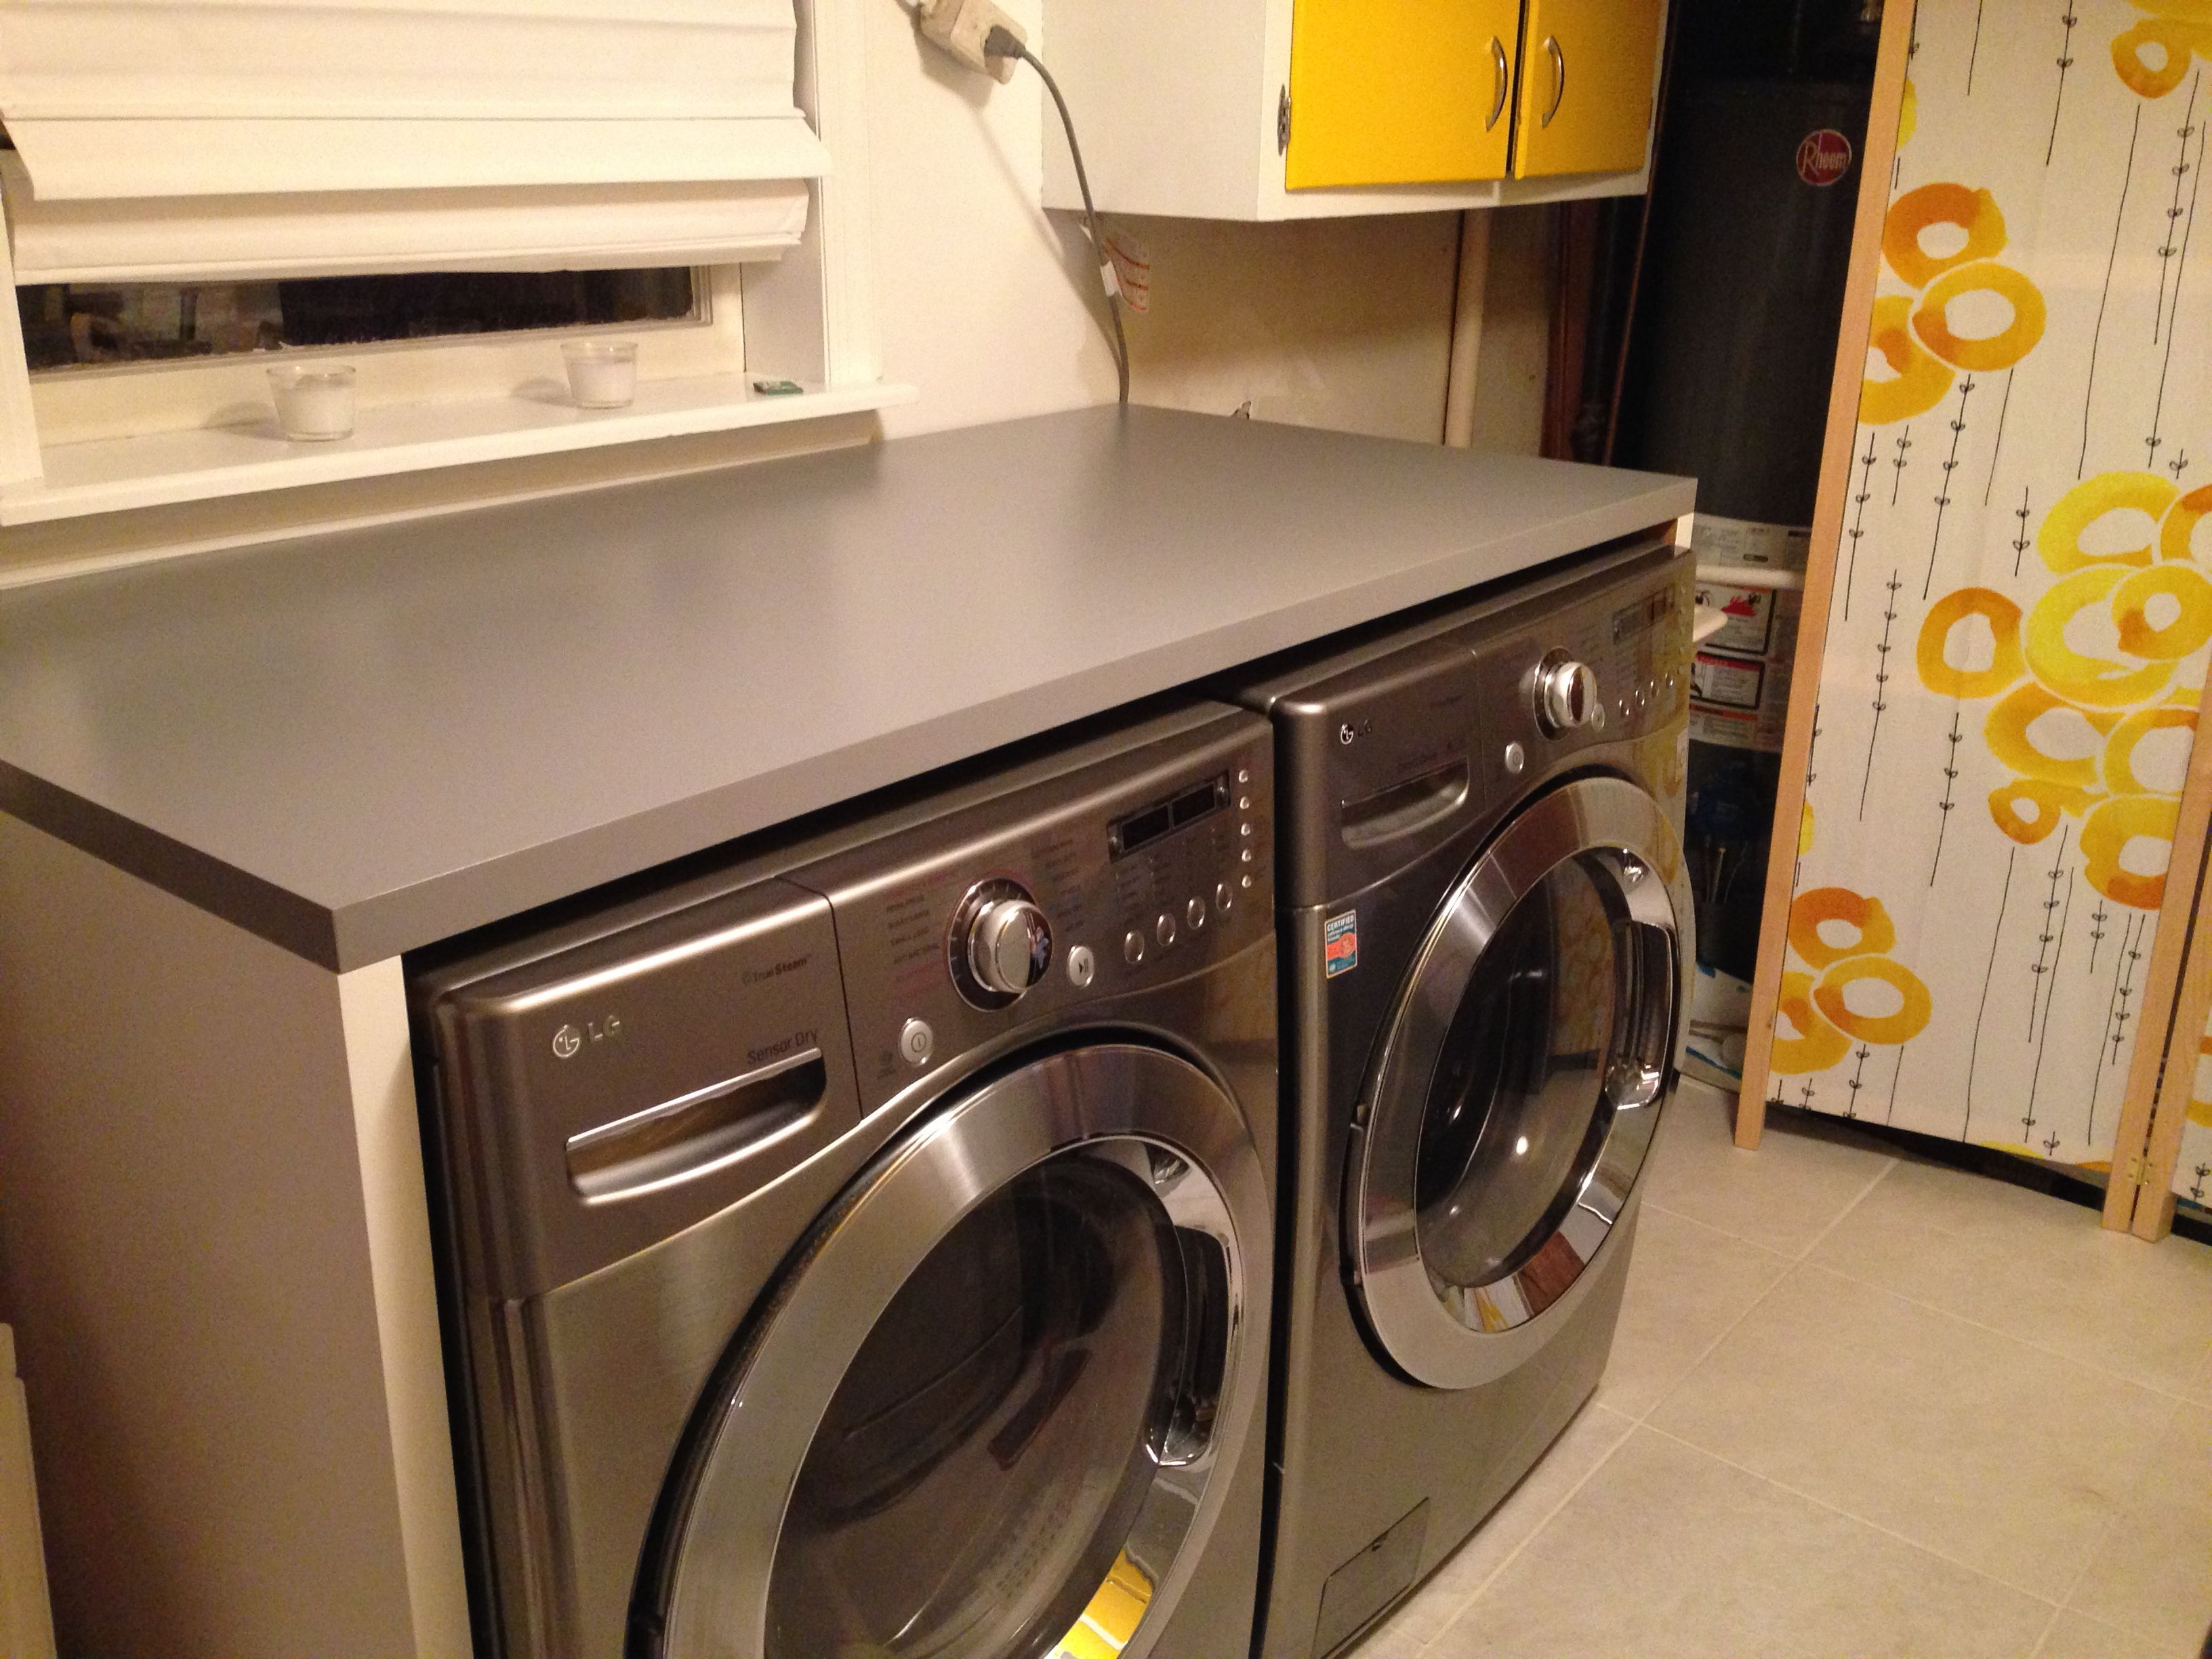 Ikea Linnmon tabletops to build counter around washer and dryer